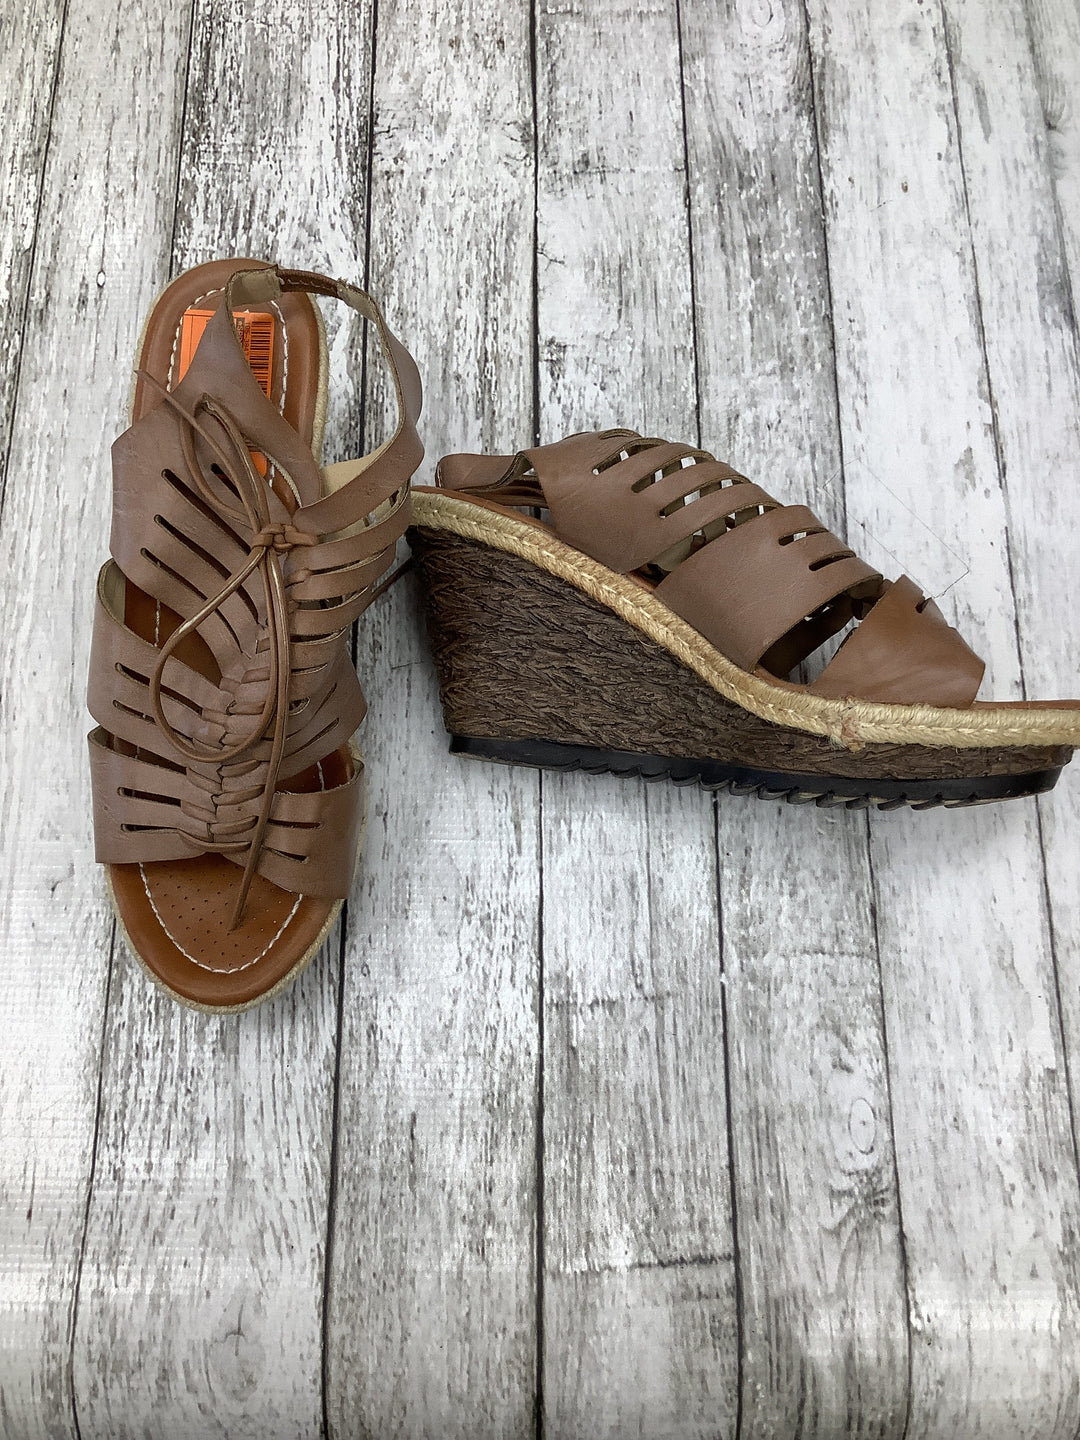 Primary Photo - brand: spring step , style: sandals high , color: tan , size: 9 , sku: 105-3847-12476